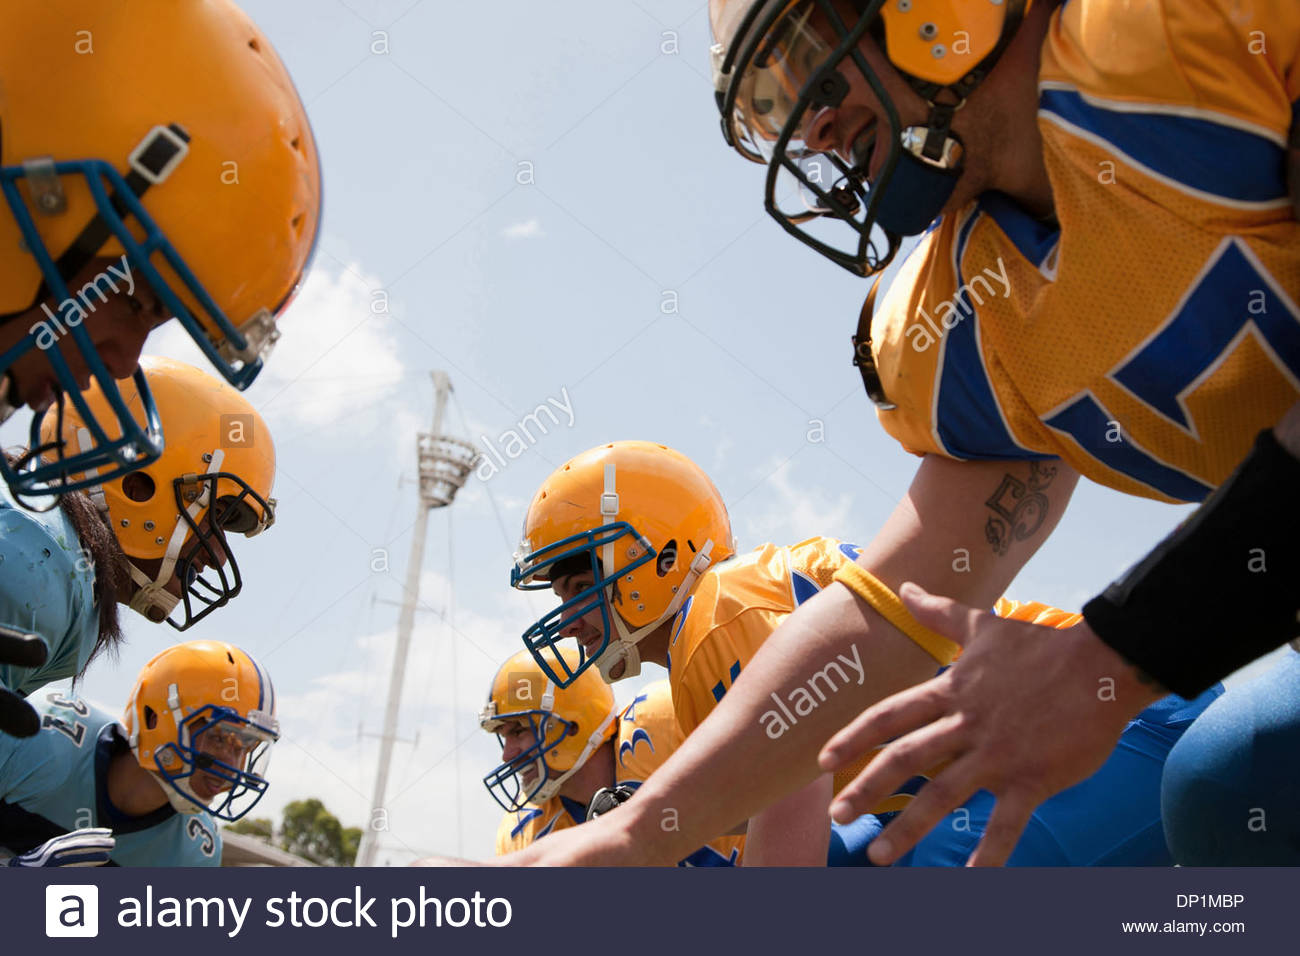 Football players preparing to play football - Stock Image